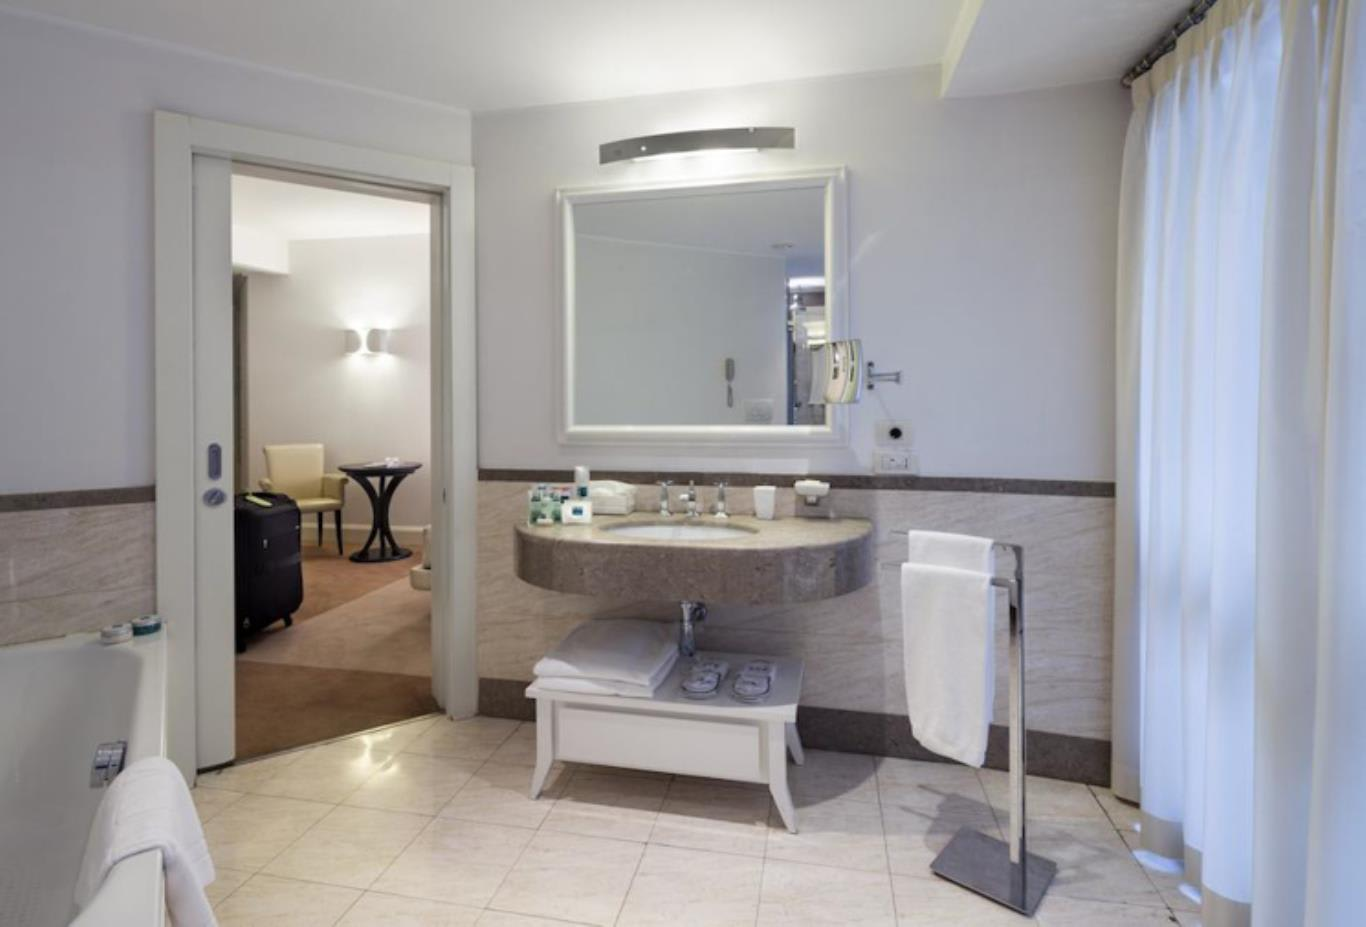 Executive Double Room bathroom